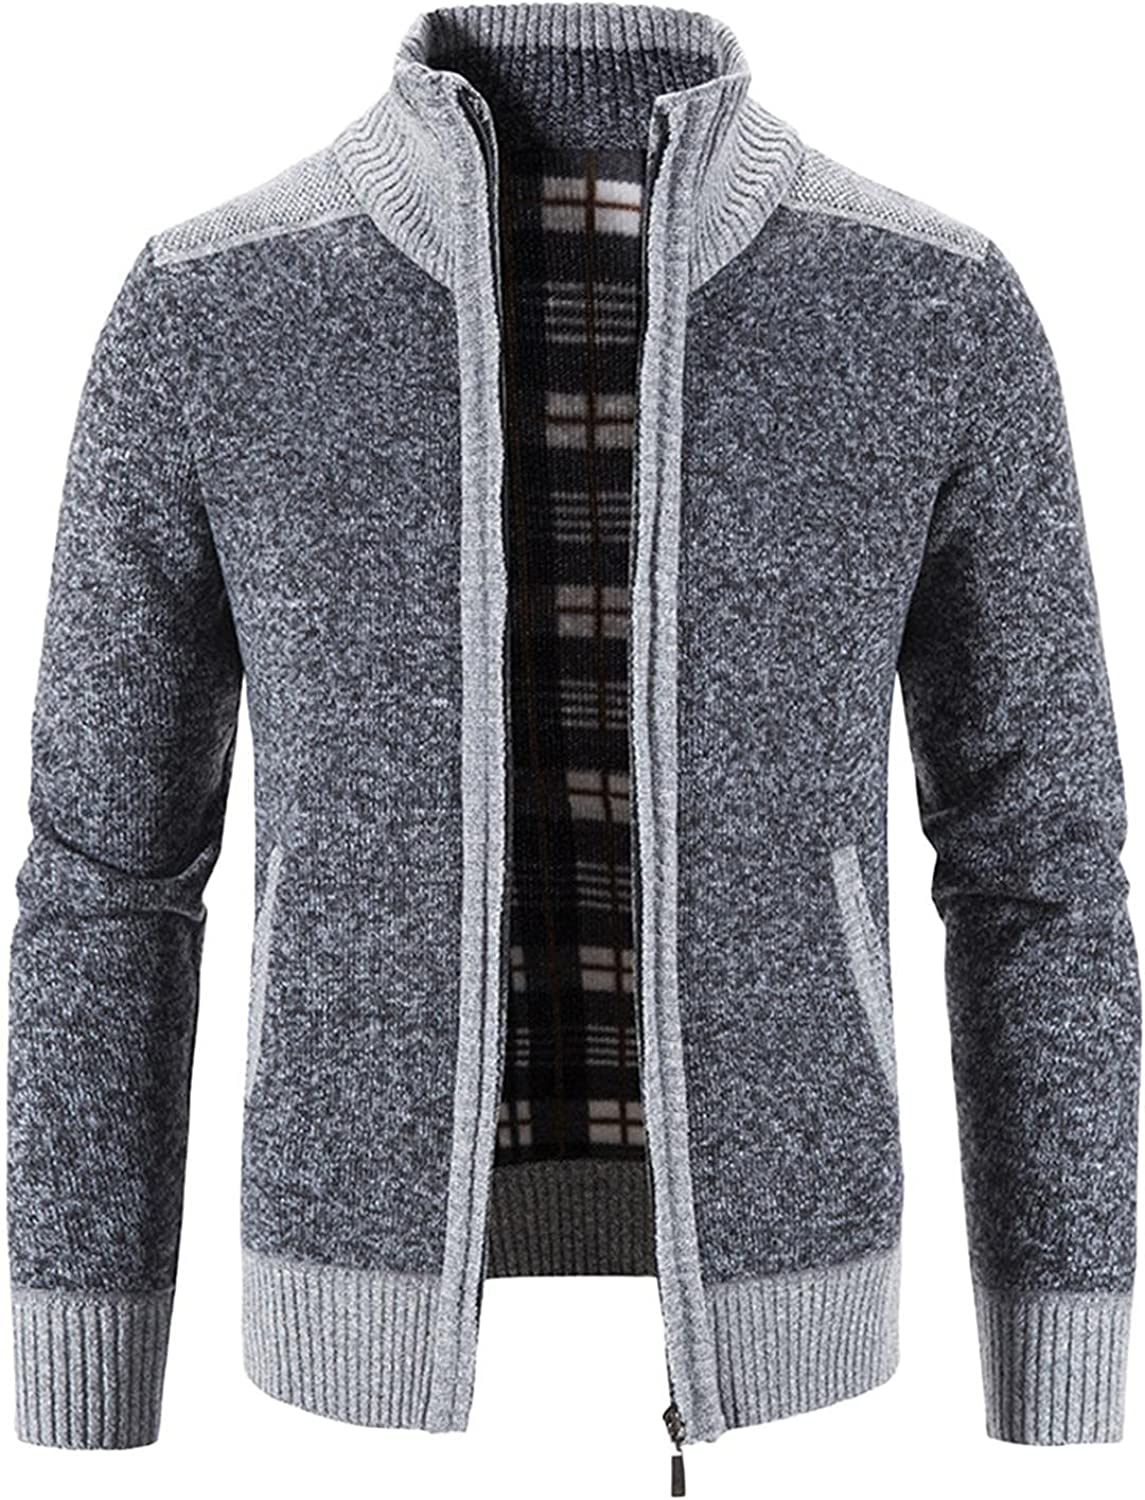 Men's Full Zip Cardigan Sweater Slim Stitching Color Stand Collar Cotton Cable Knitted Sweater Jacket Outwear Fall Coats